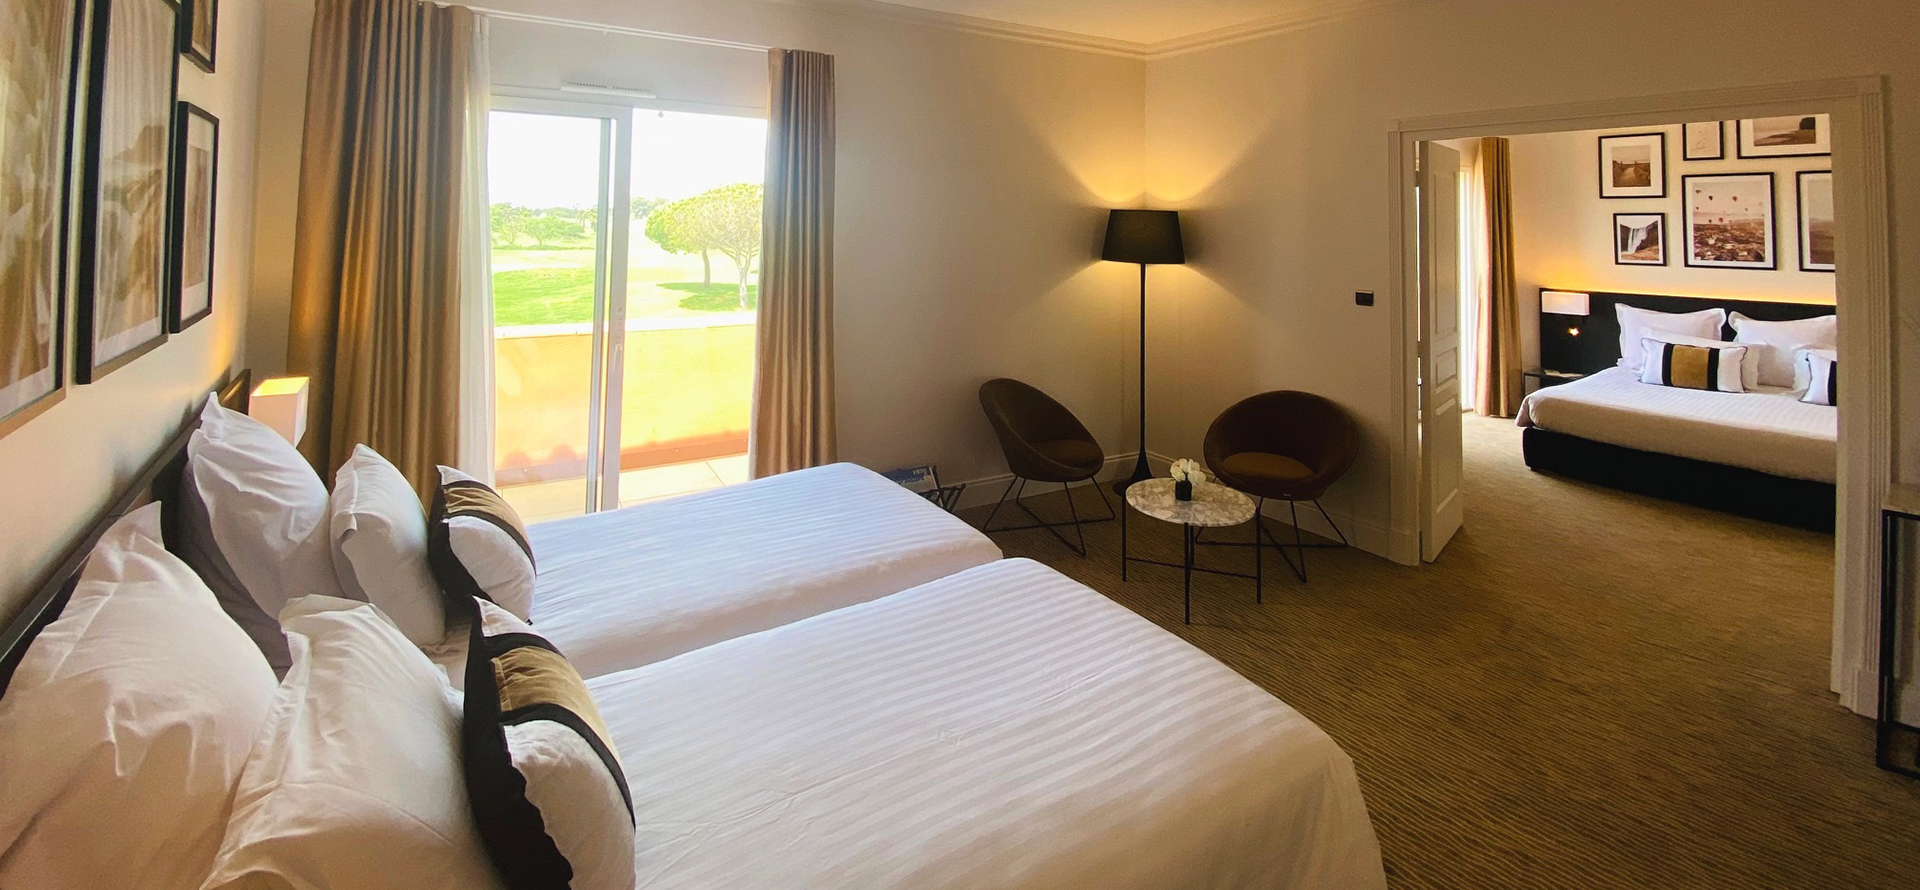 View of a suite with 1 double bed at the Palmyra Golf, a hotel with a spa in Occitanie